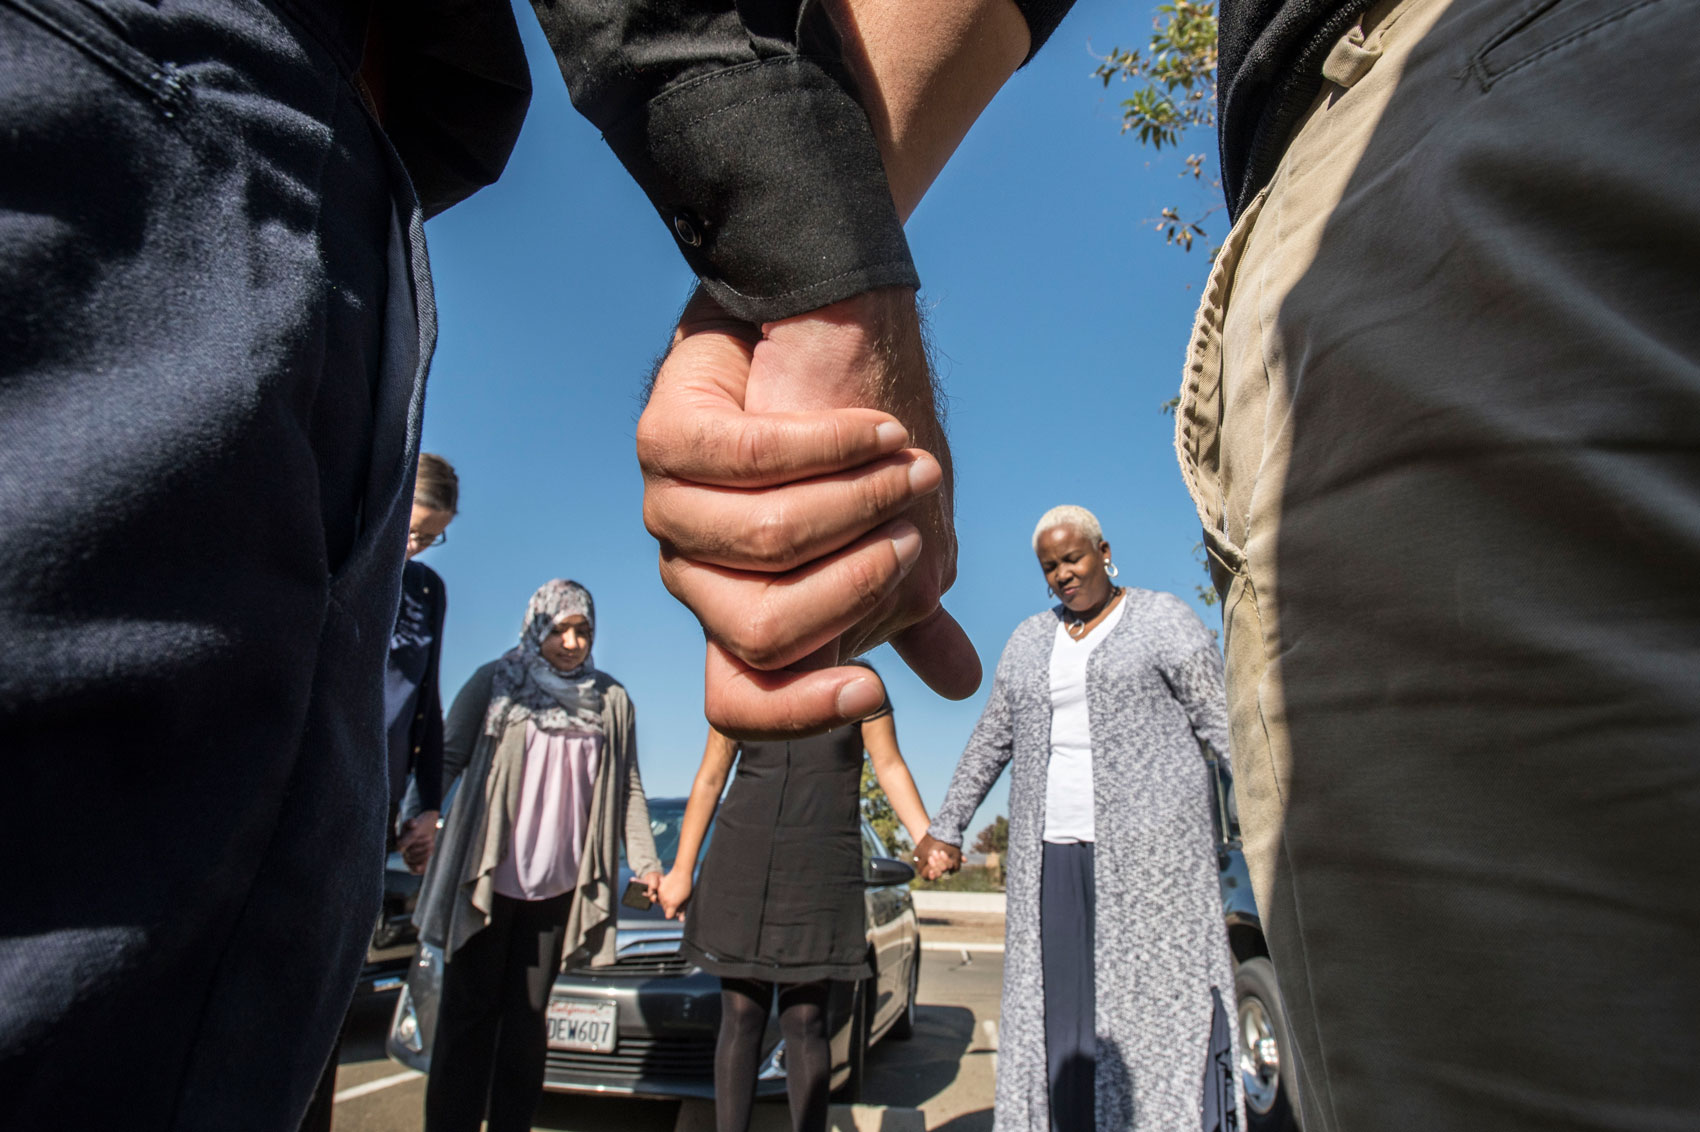 Faith In The Valley Leaders Holding Hands During An Action. (Photo By Bryan Patrick)